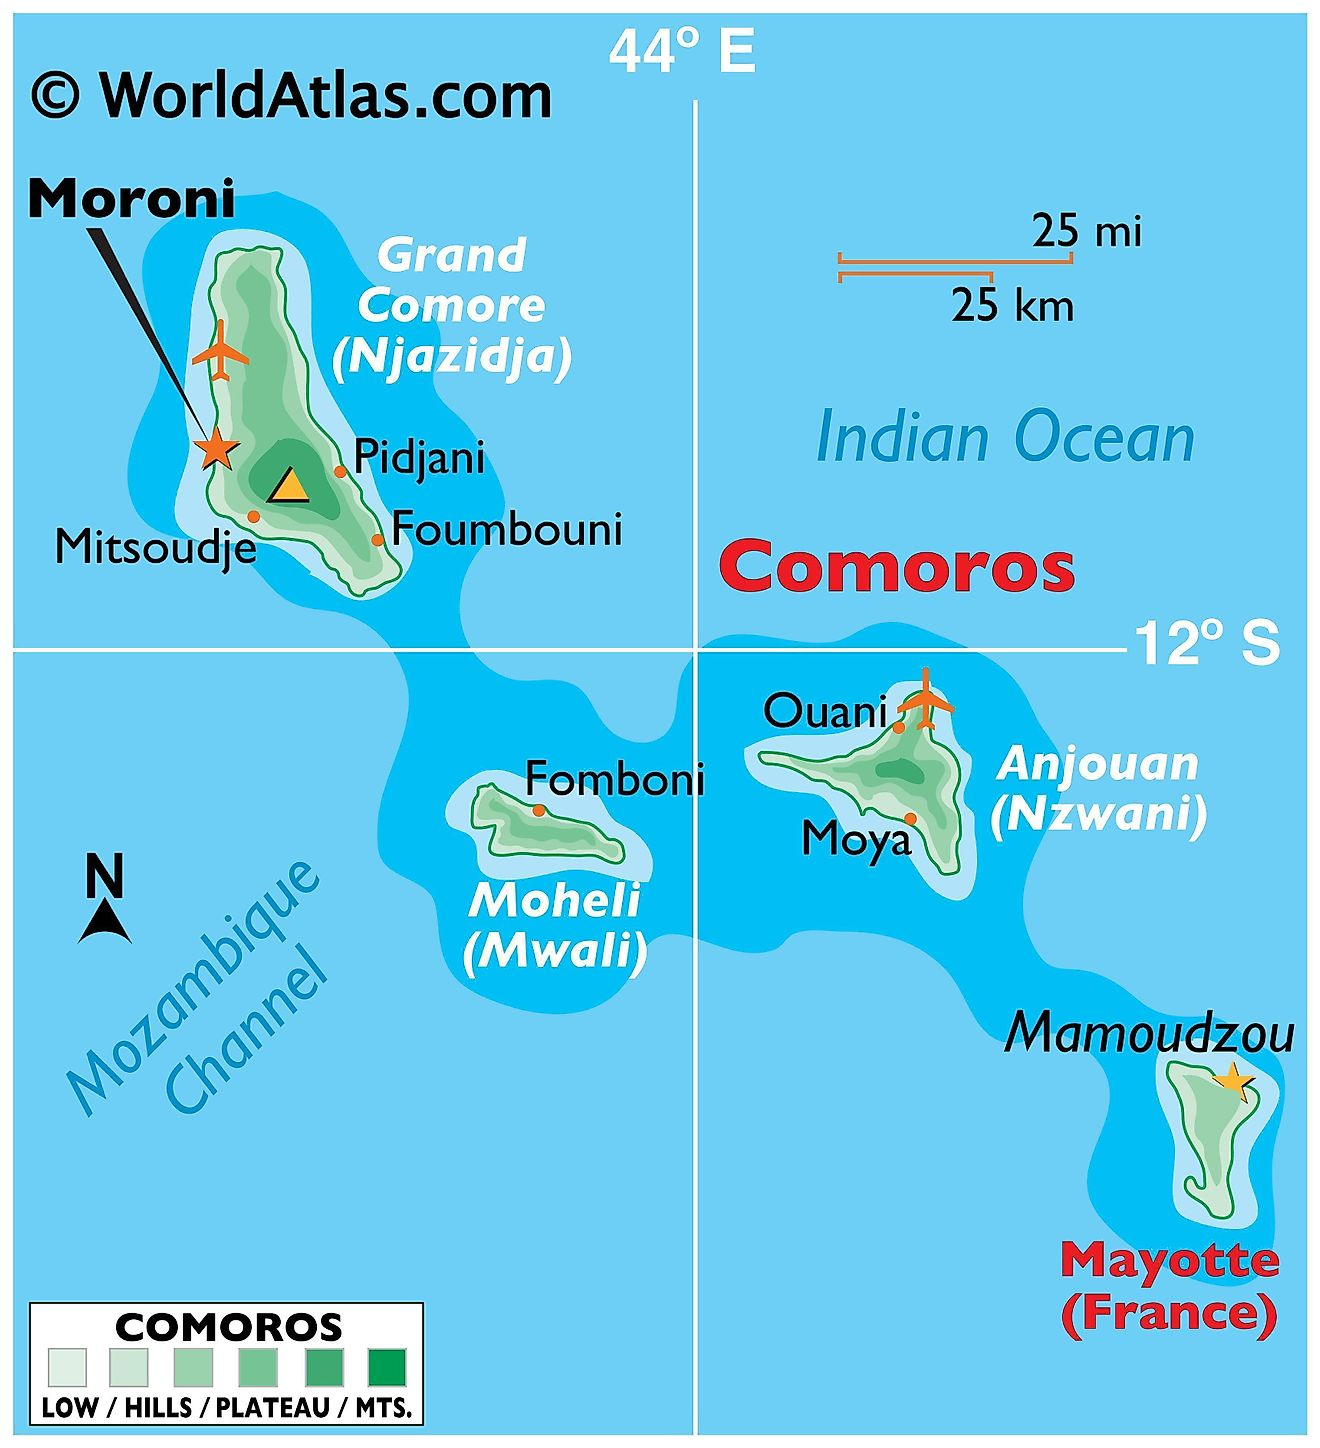 Physical Map of Comoros showing the four main islands, surrounding water bodies, the topography of the islands, important settlements, and the highest point in the country.